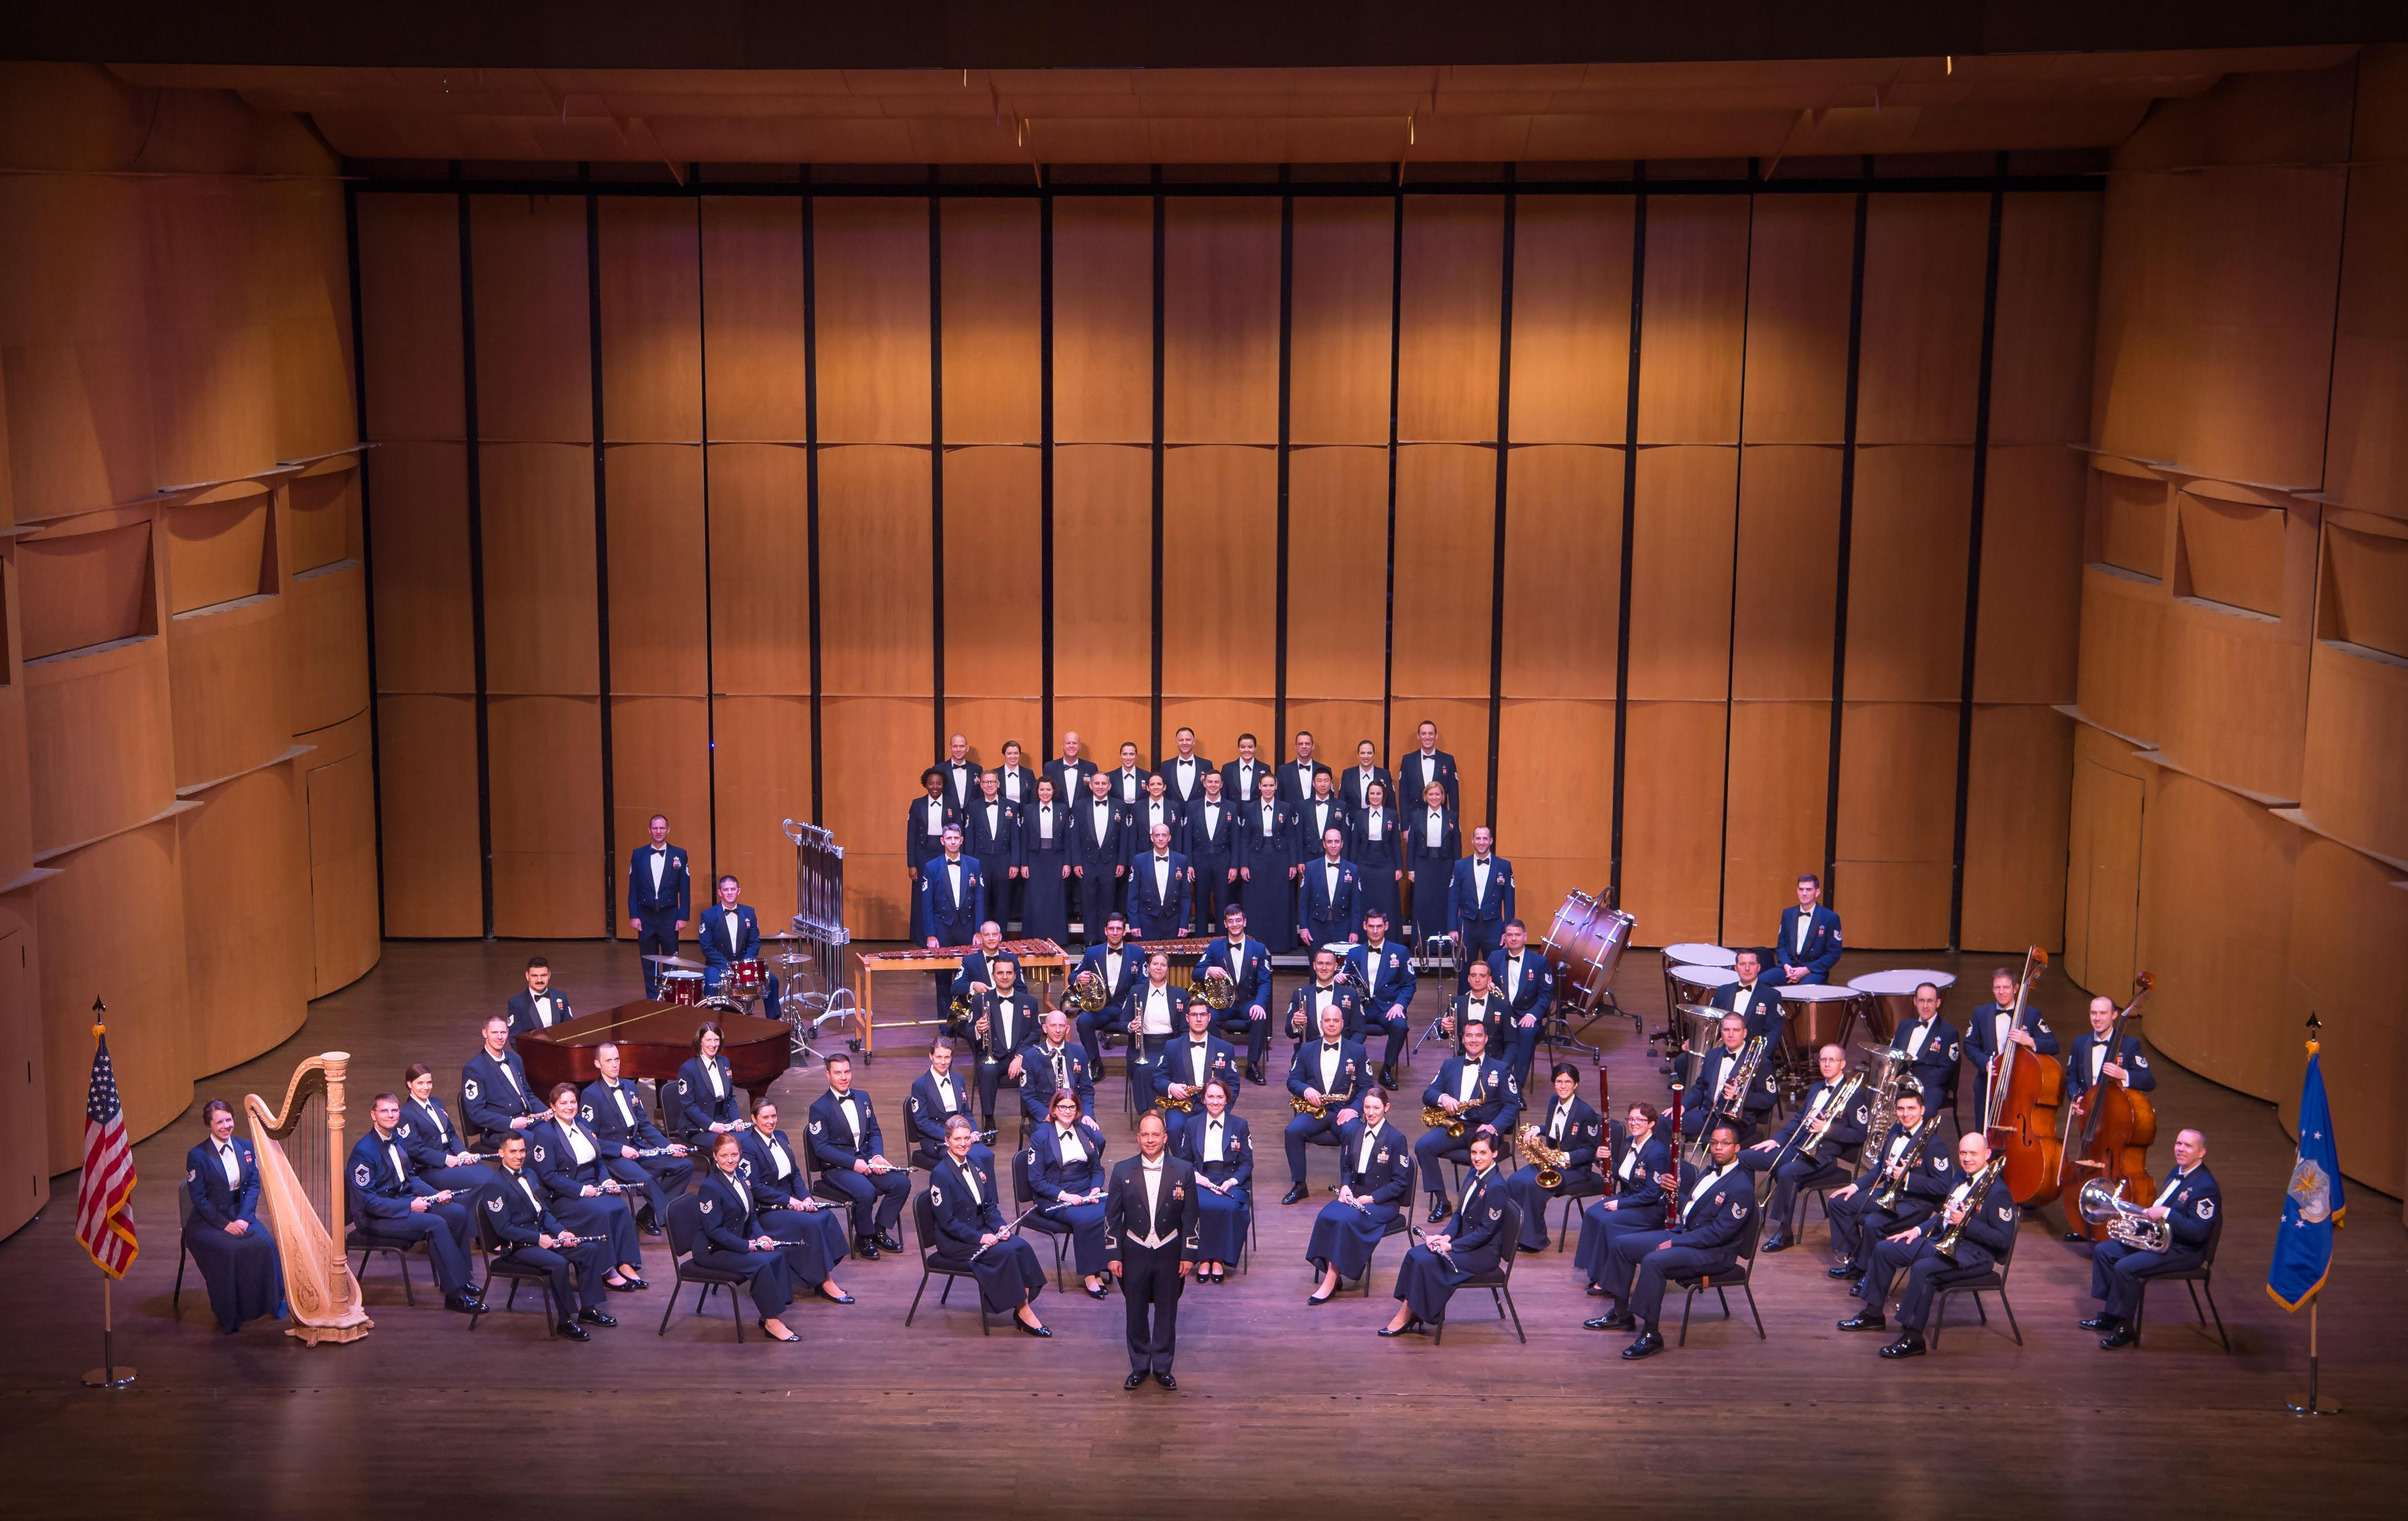 The United States Air Force Concert Band Biloxi Ms 7 Mar 2020